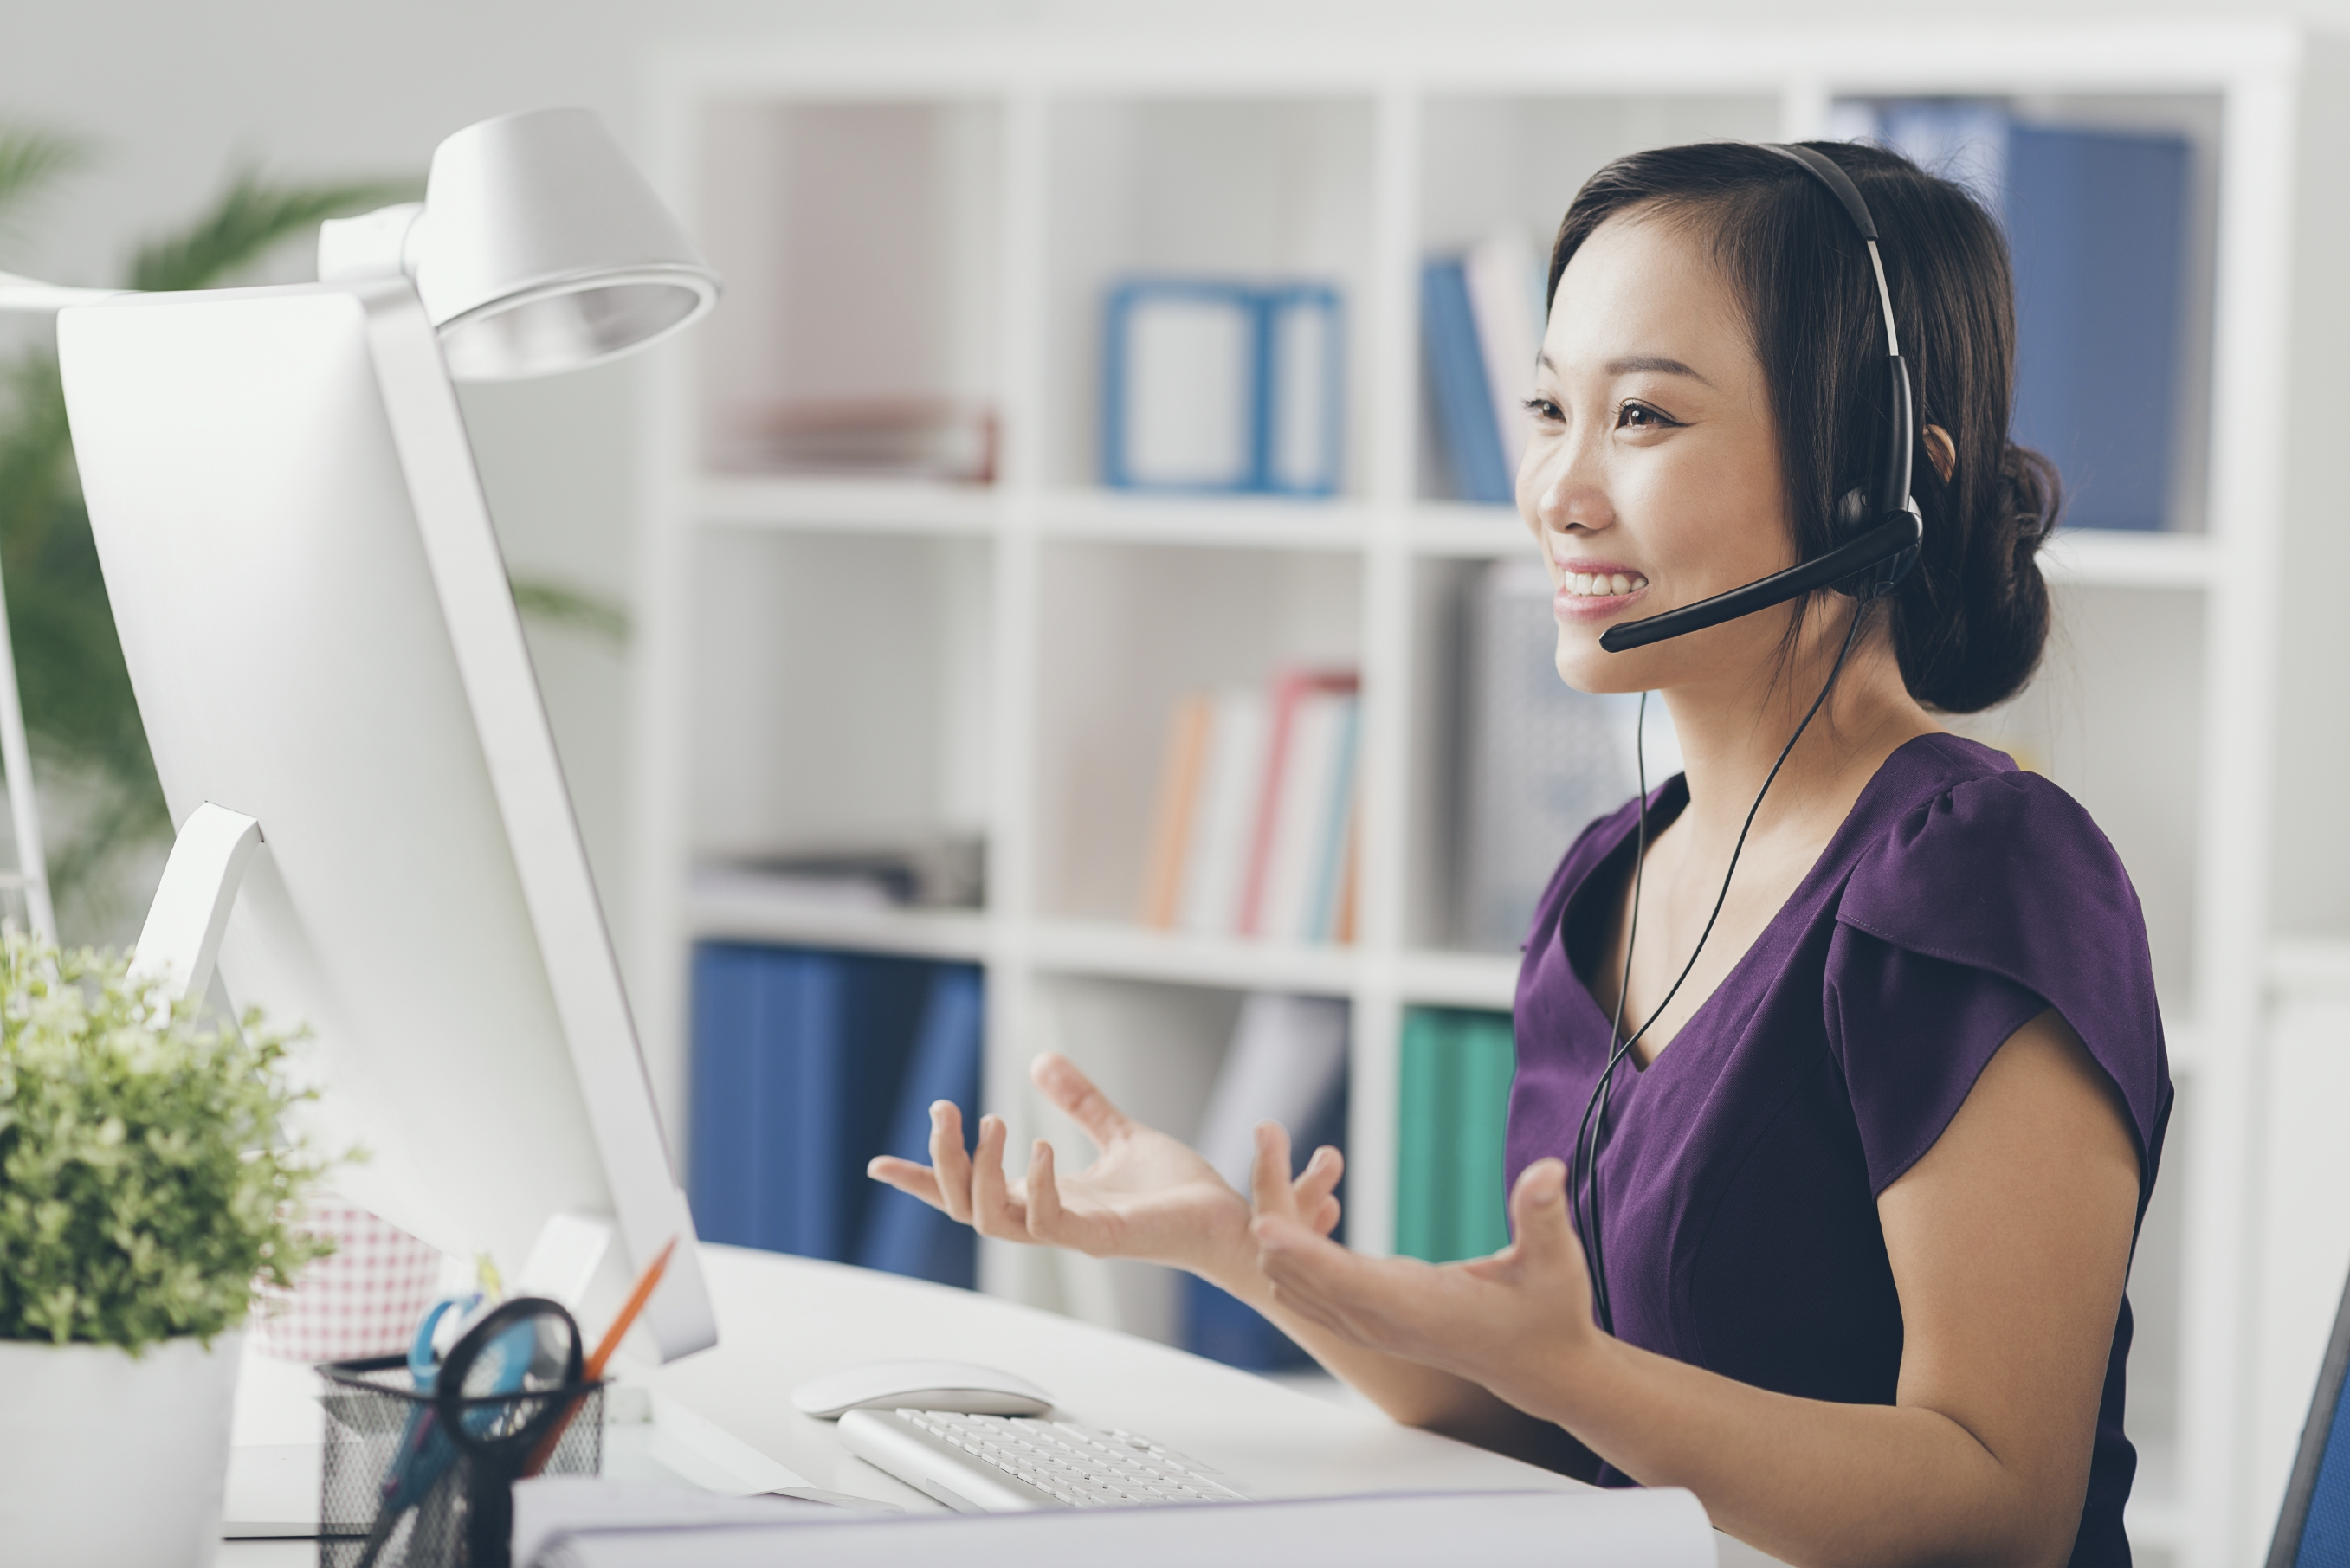 Contact Center Outsourcing Platform